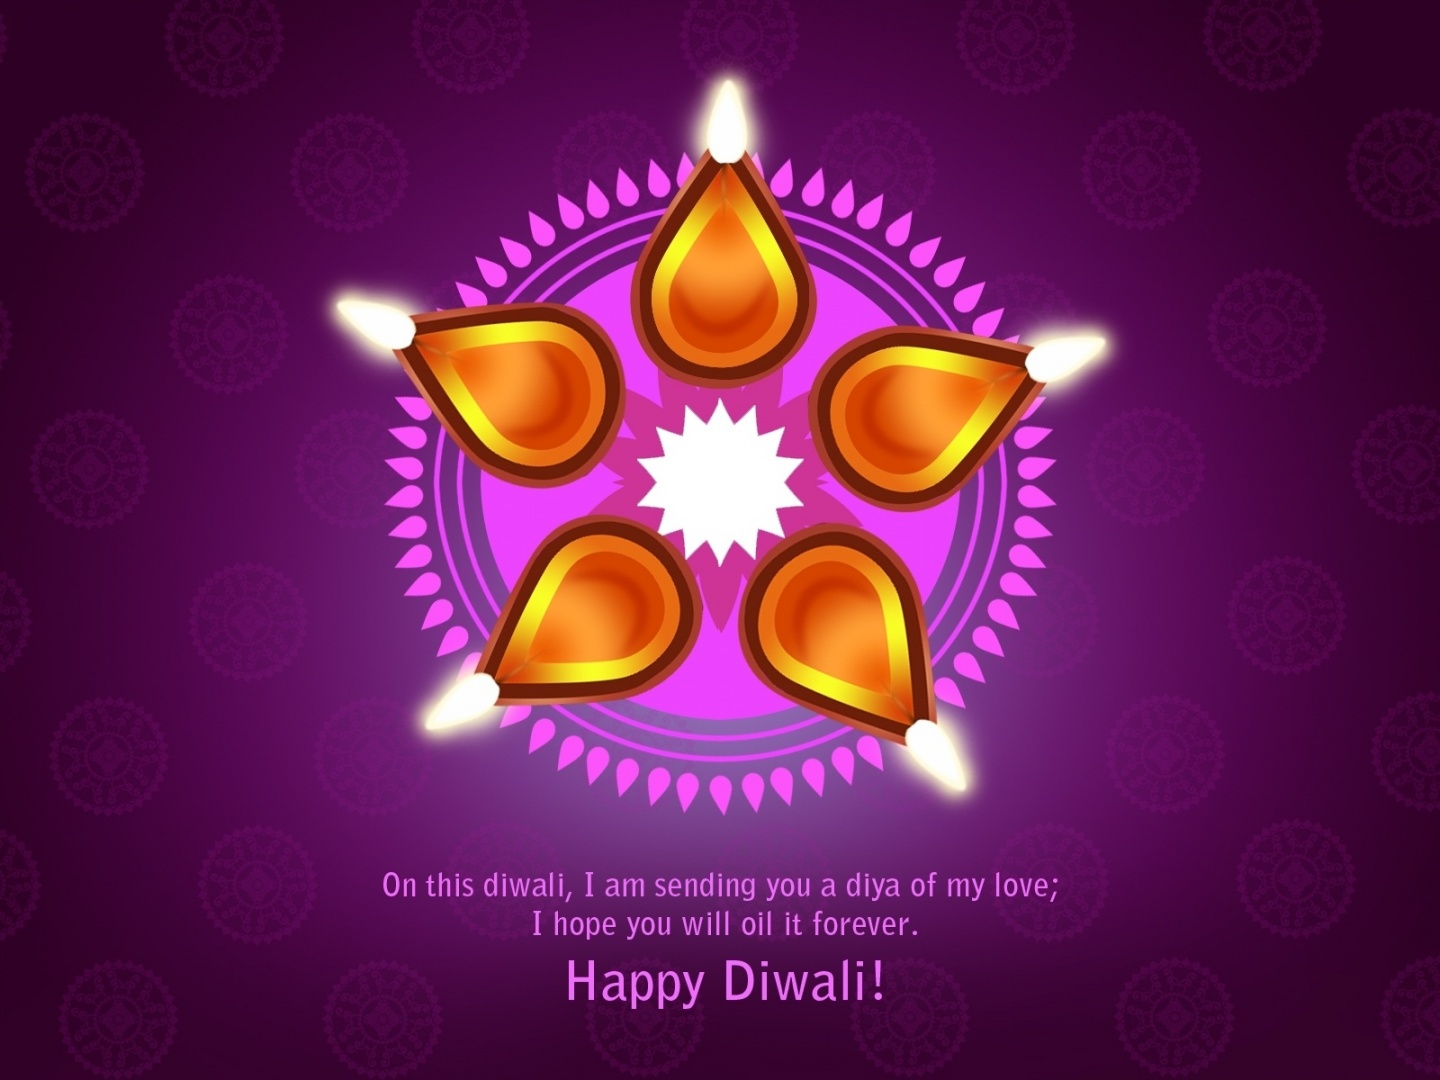 Happy diwali wishes videos download